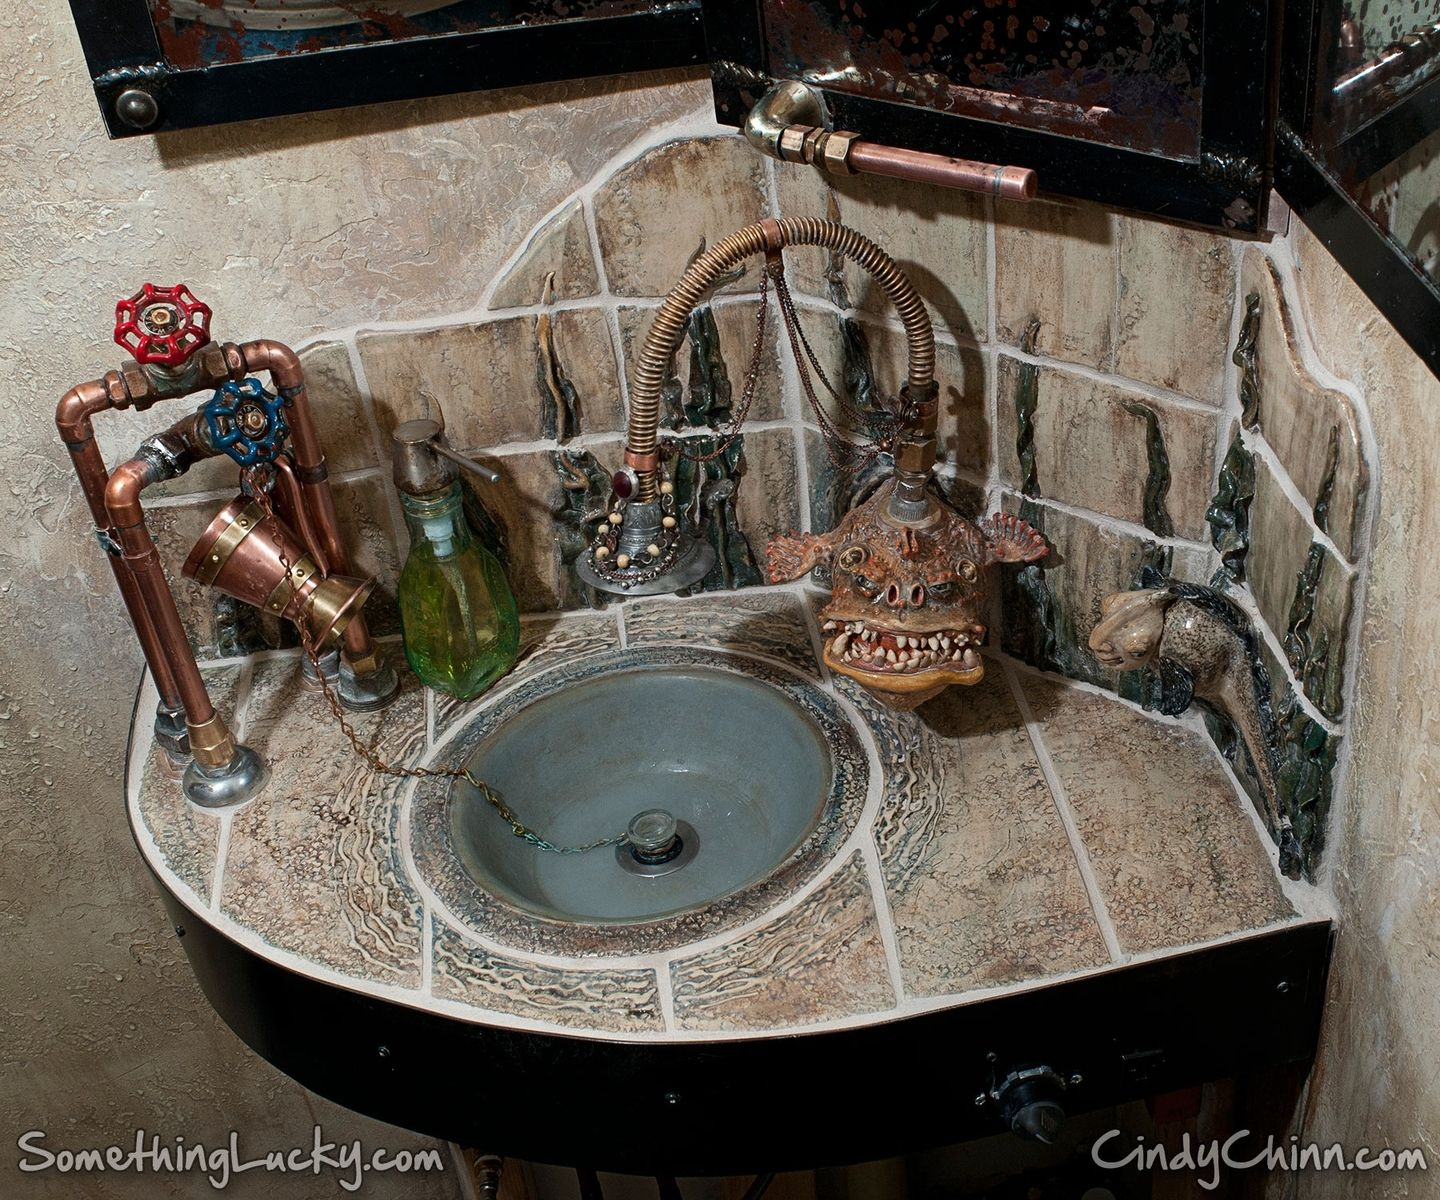 Dyconn Faucet Edison Bathroom Mirror Reviews: Hand Crafted Steampunk Sculpted Tile Sink And Vanity By